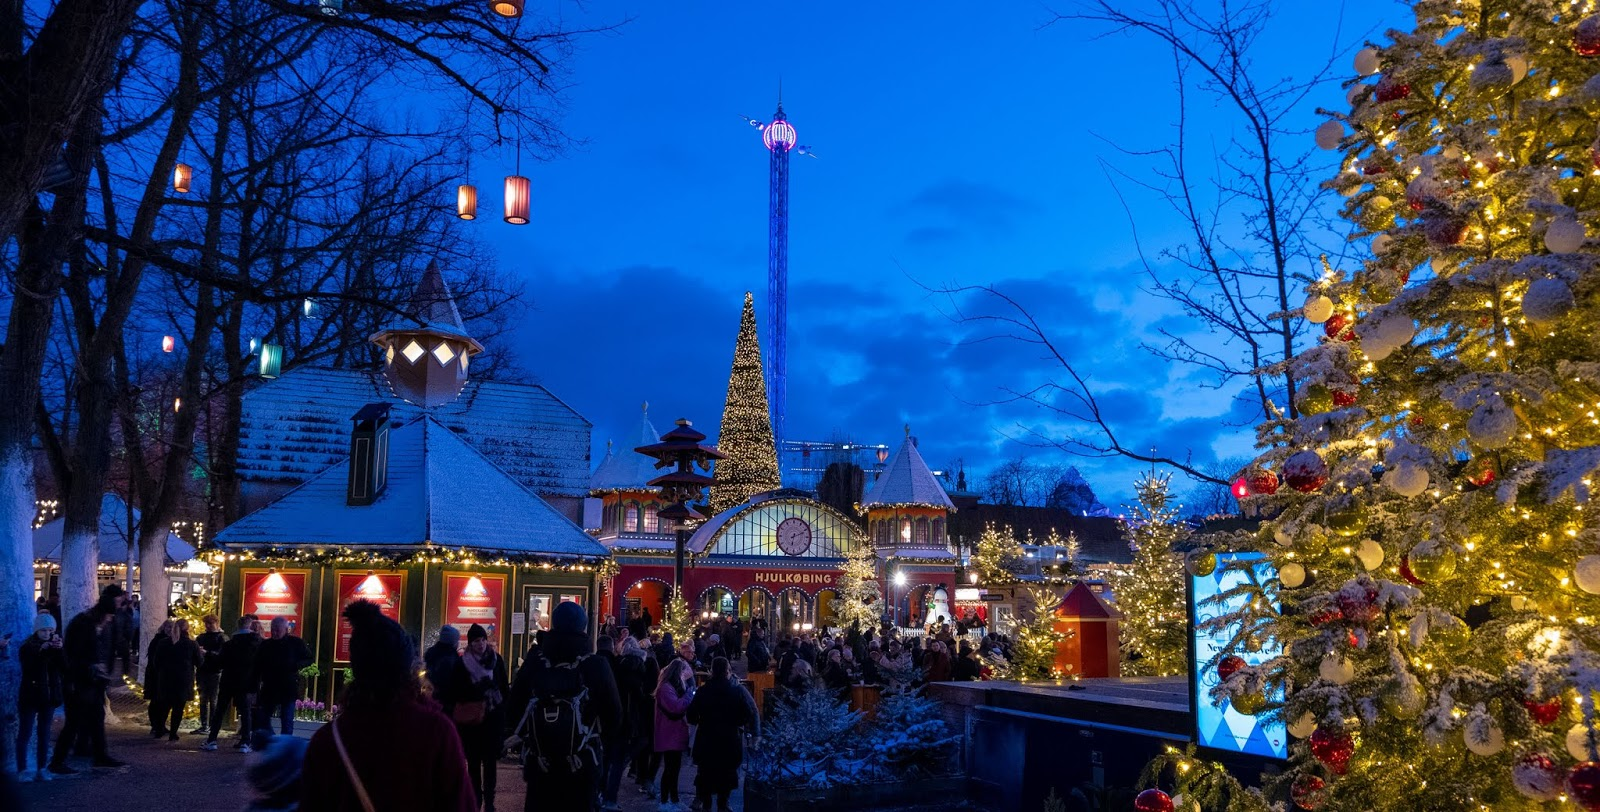 Tivoli Gardens at Christmas, Copenhagen